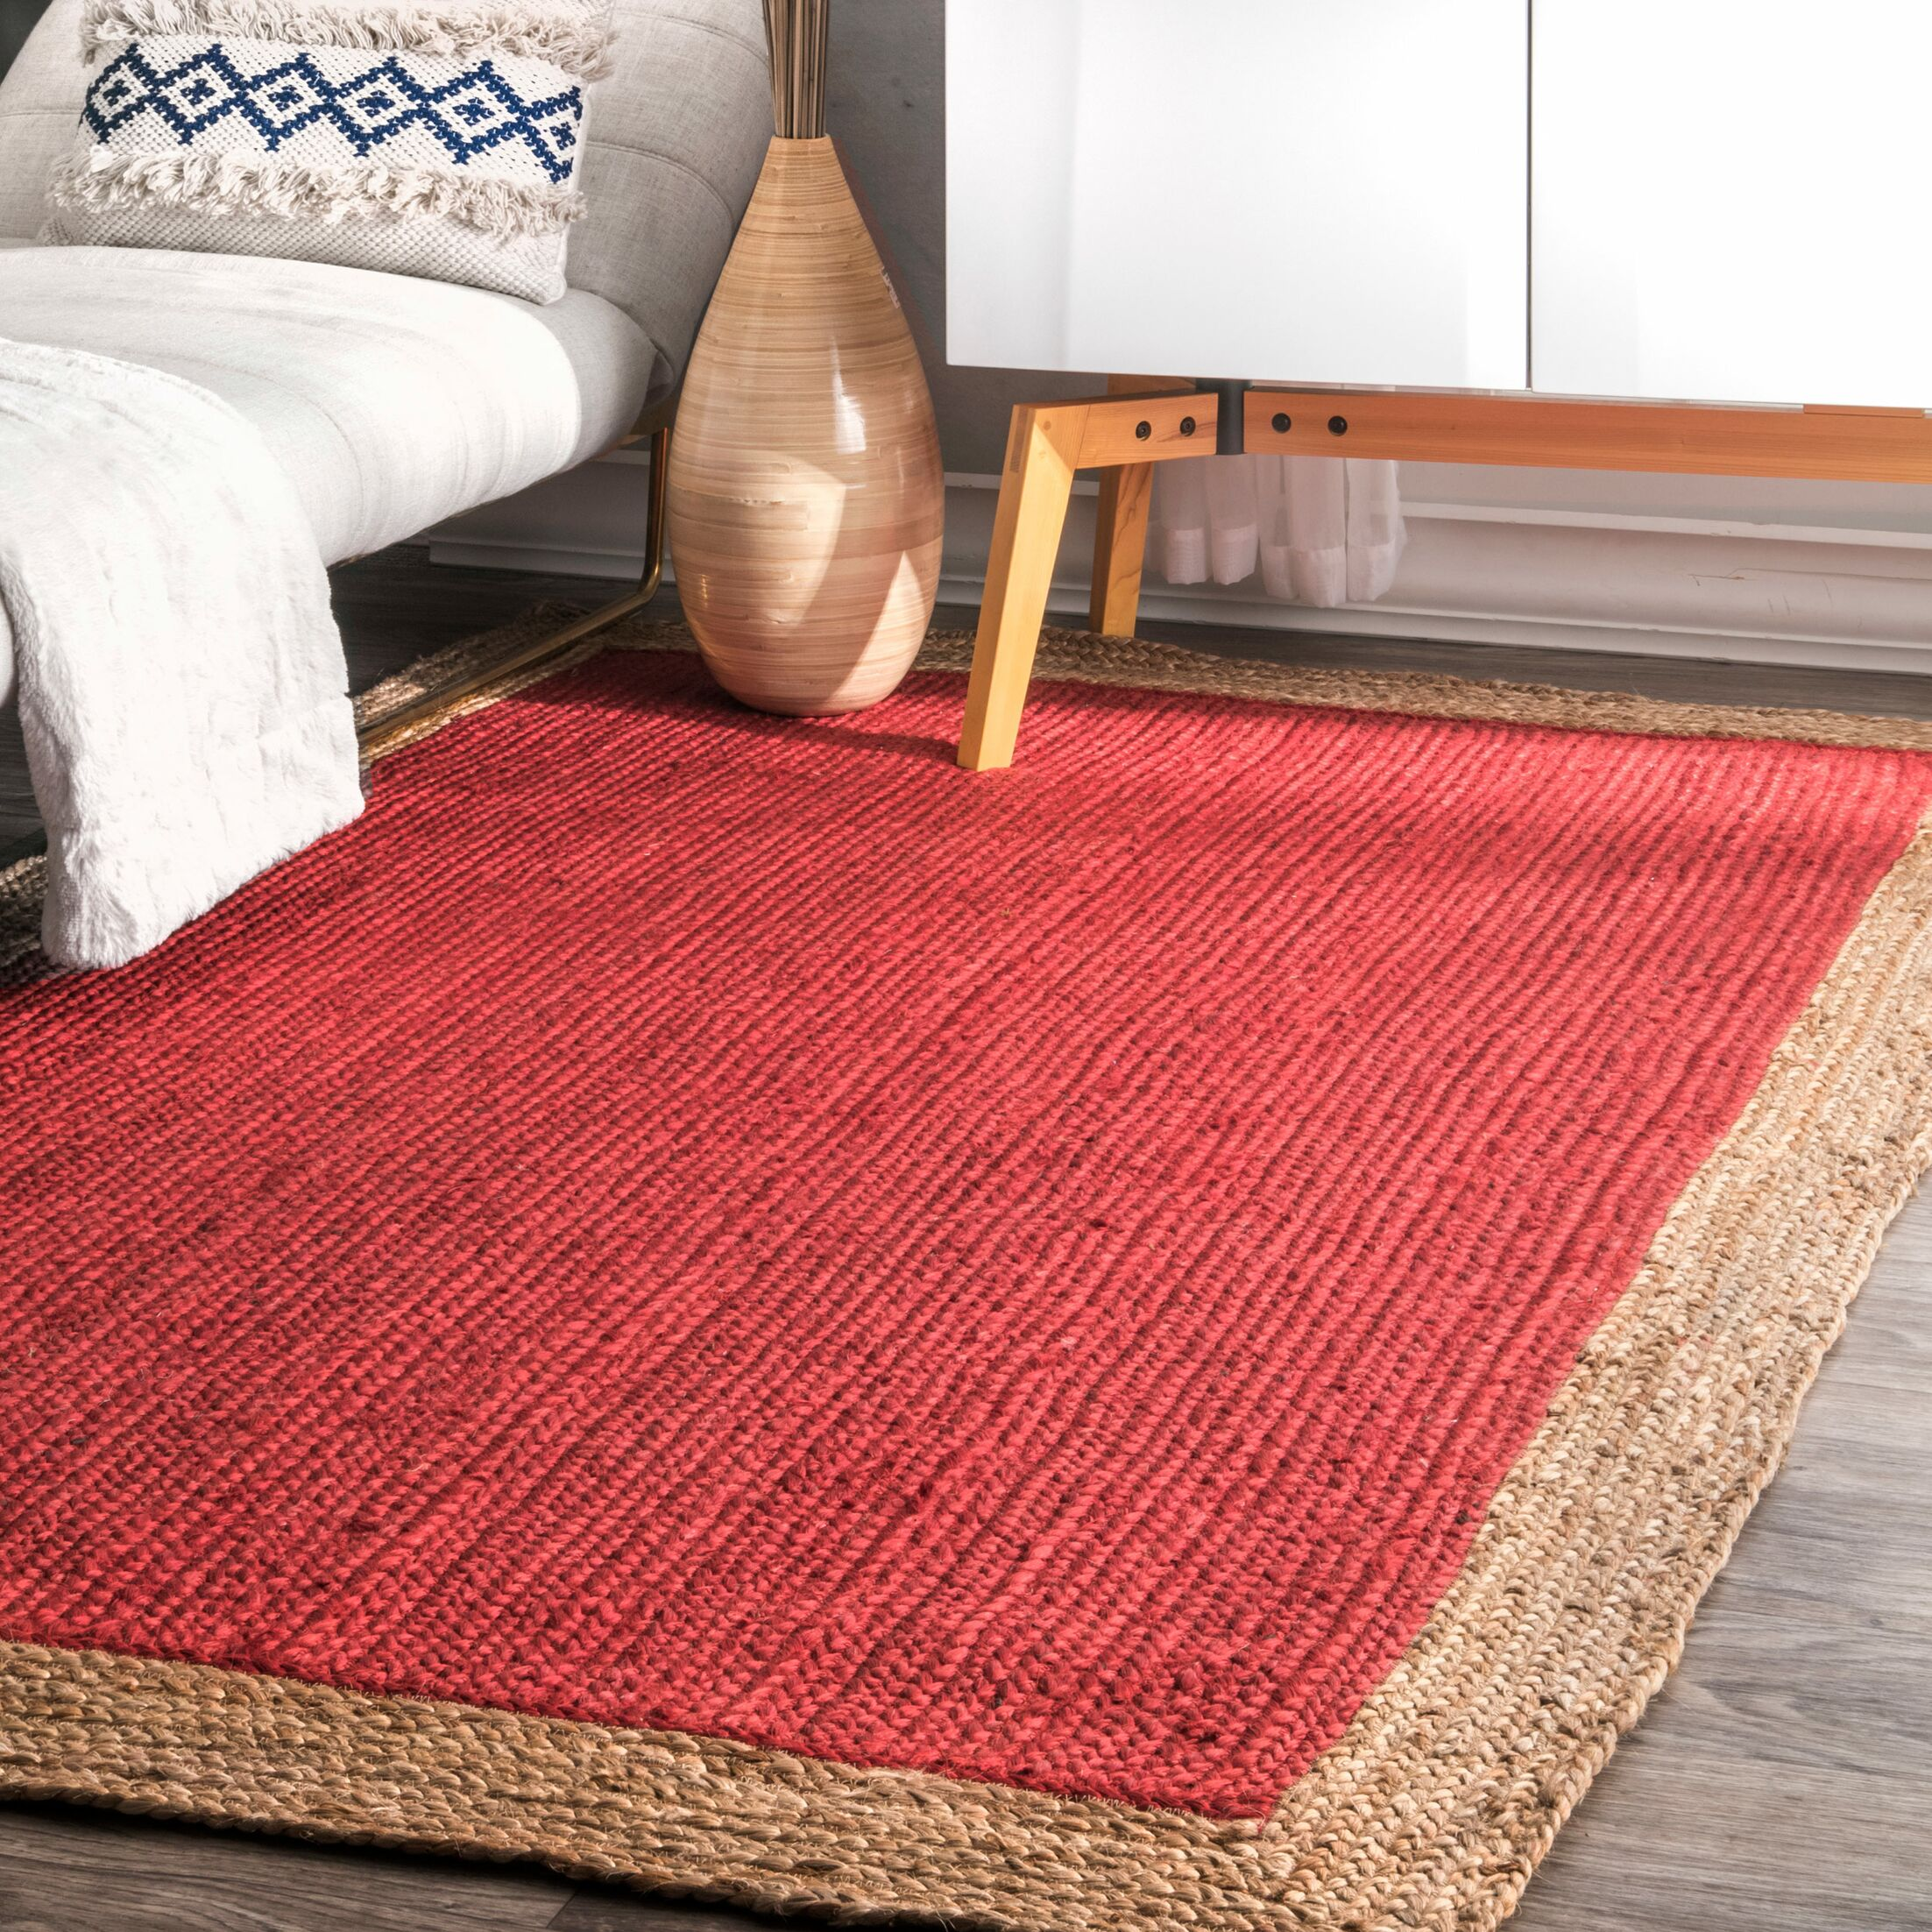 Knox Hand-Woven Red Area Rug Rug Size: Rectangle 5' x 8'